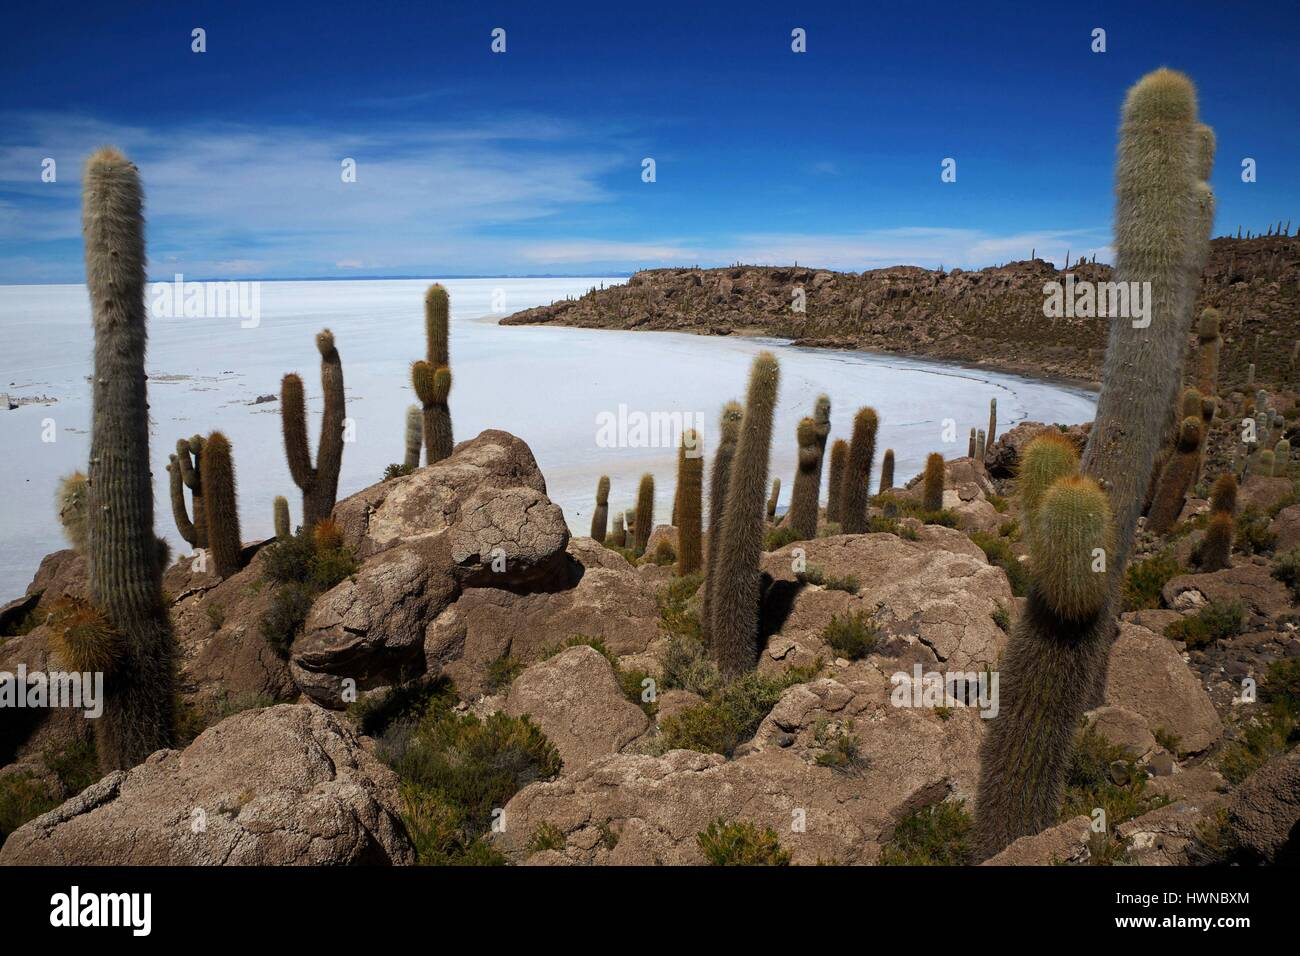 Bolivia, department of Potosi, altiplano, salar de Uyuni, hill of Incahuasi bristling with giant catus, in the middle - Stock Image